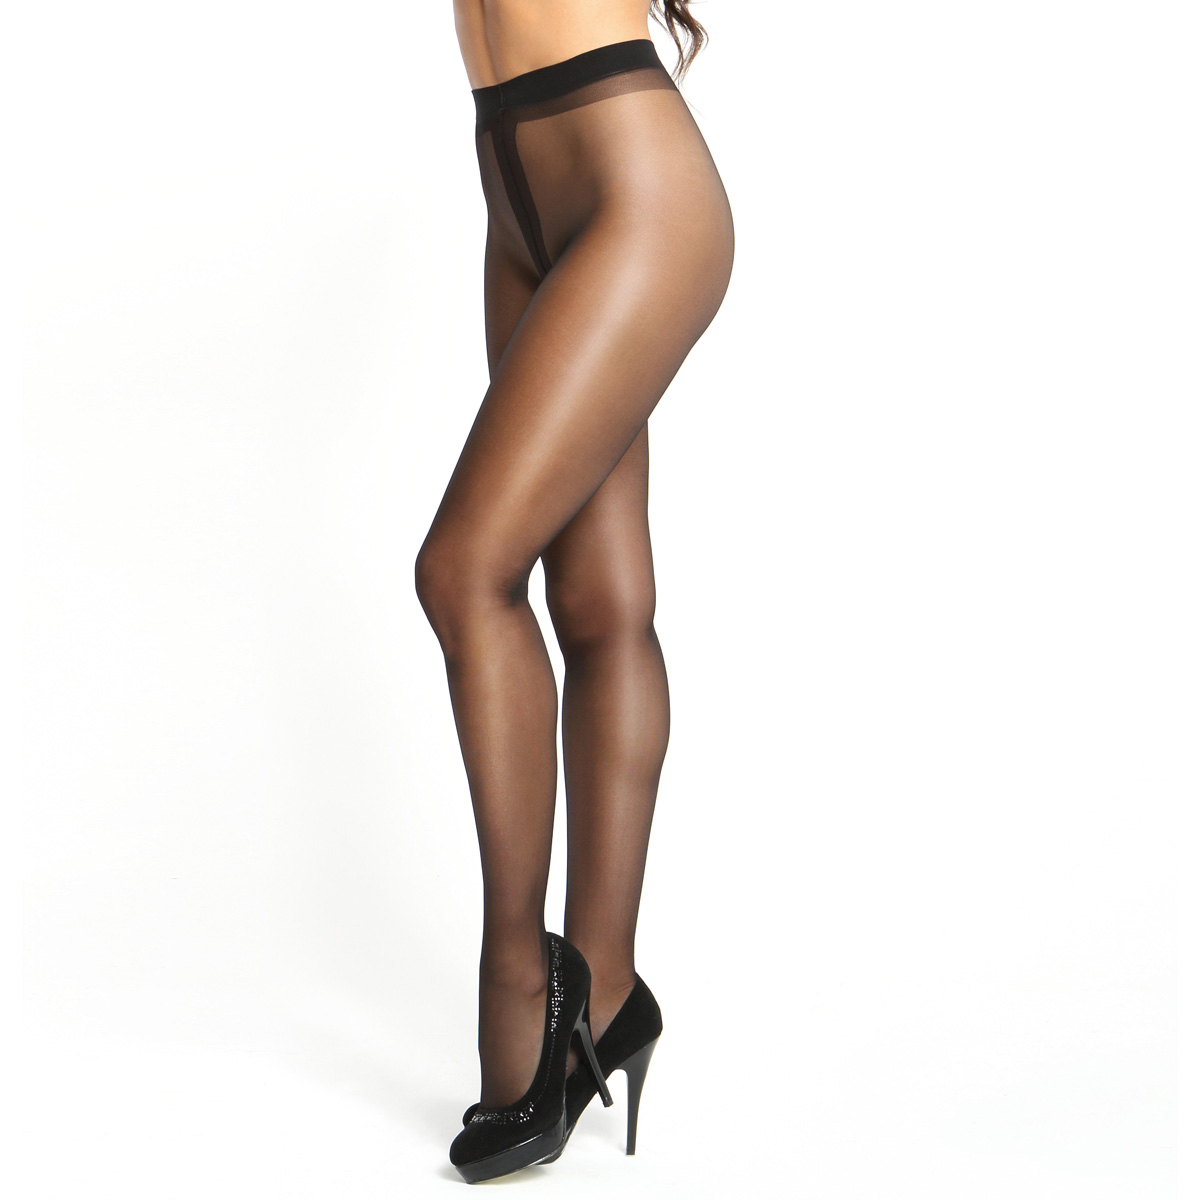 0f32adb837b Crotchless Tights P101 - Black